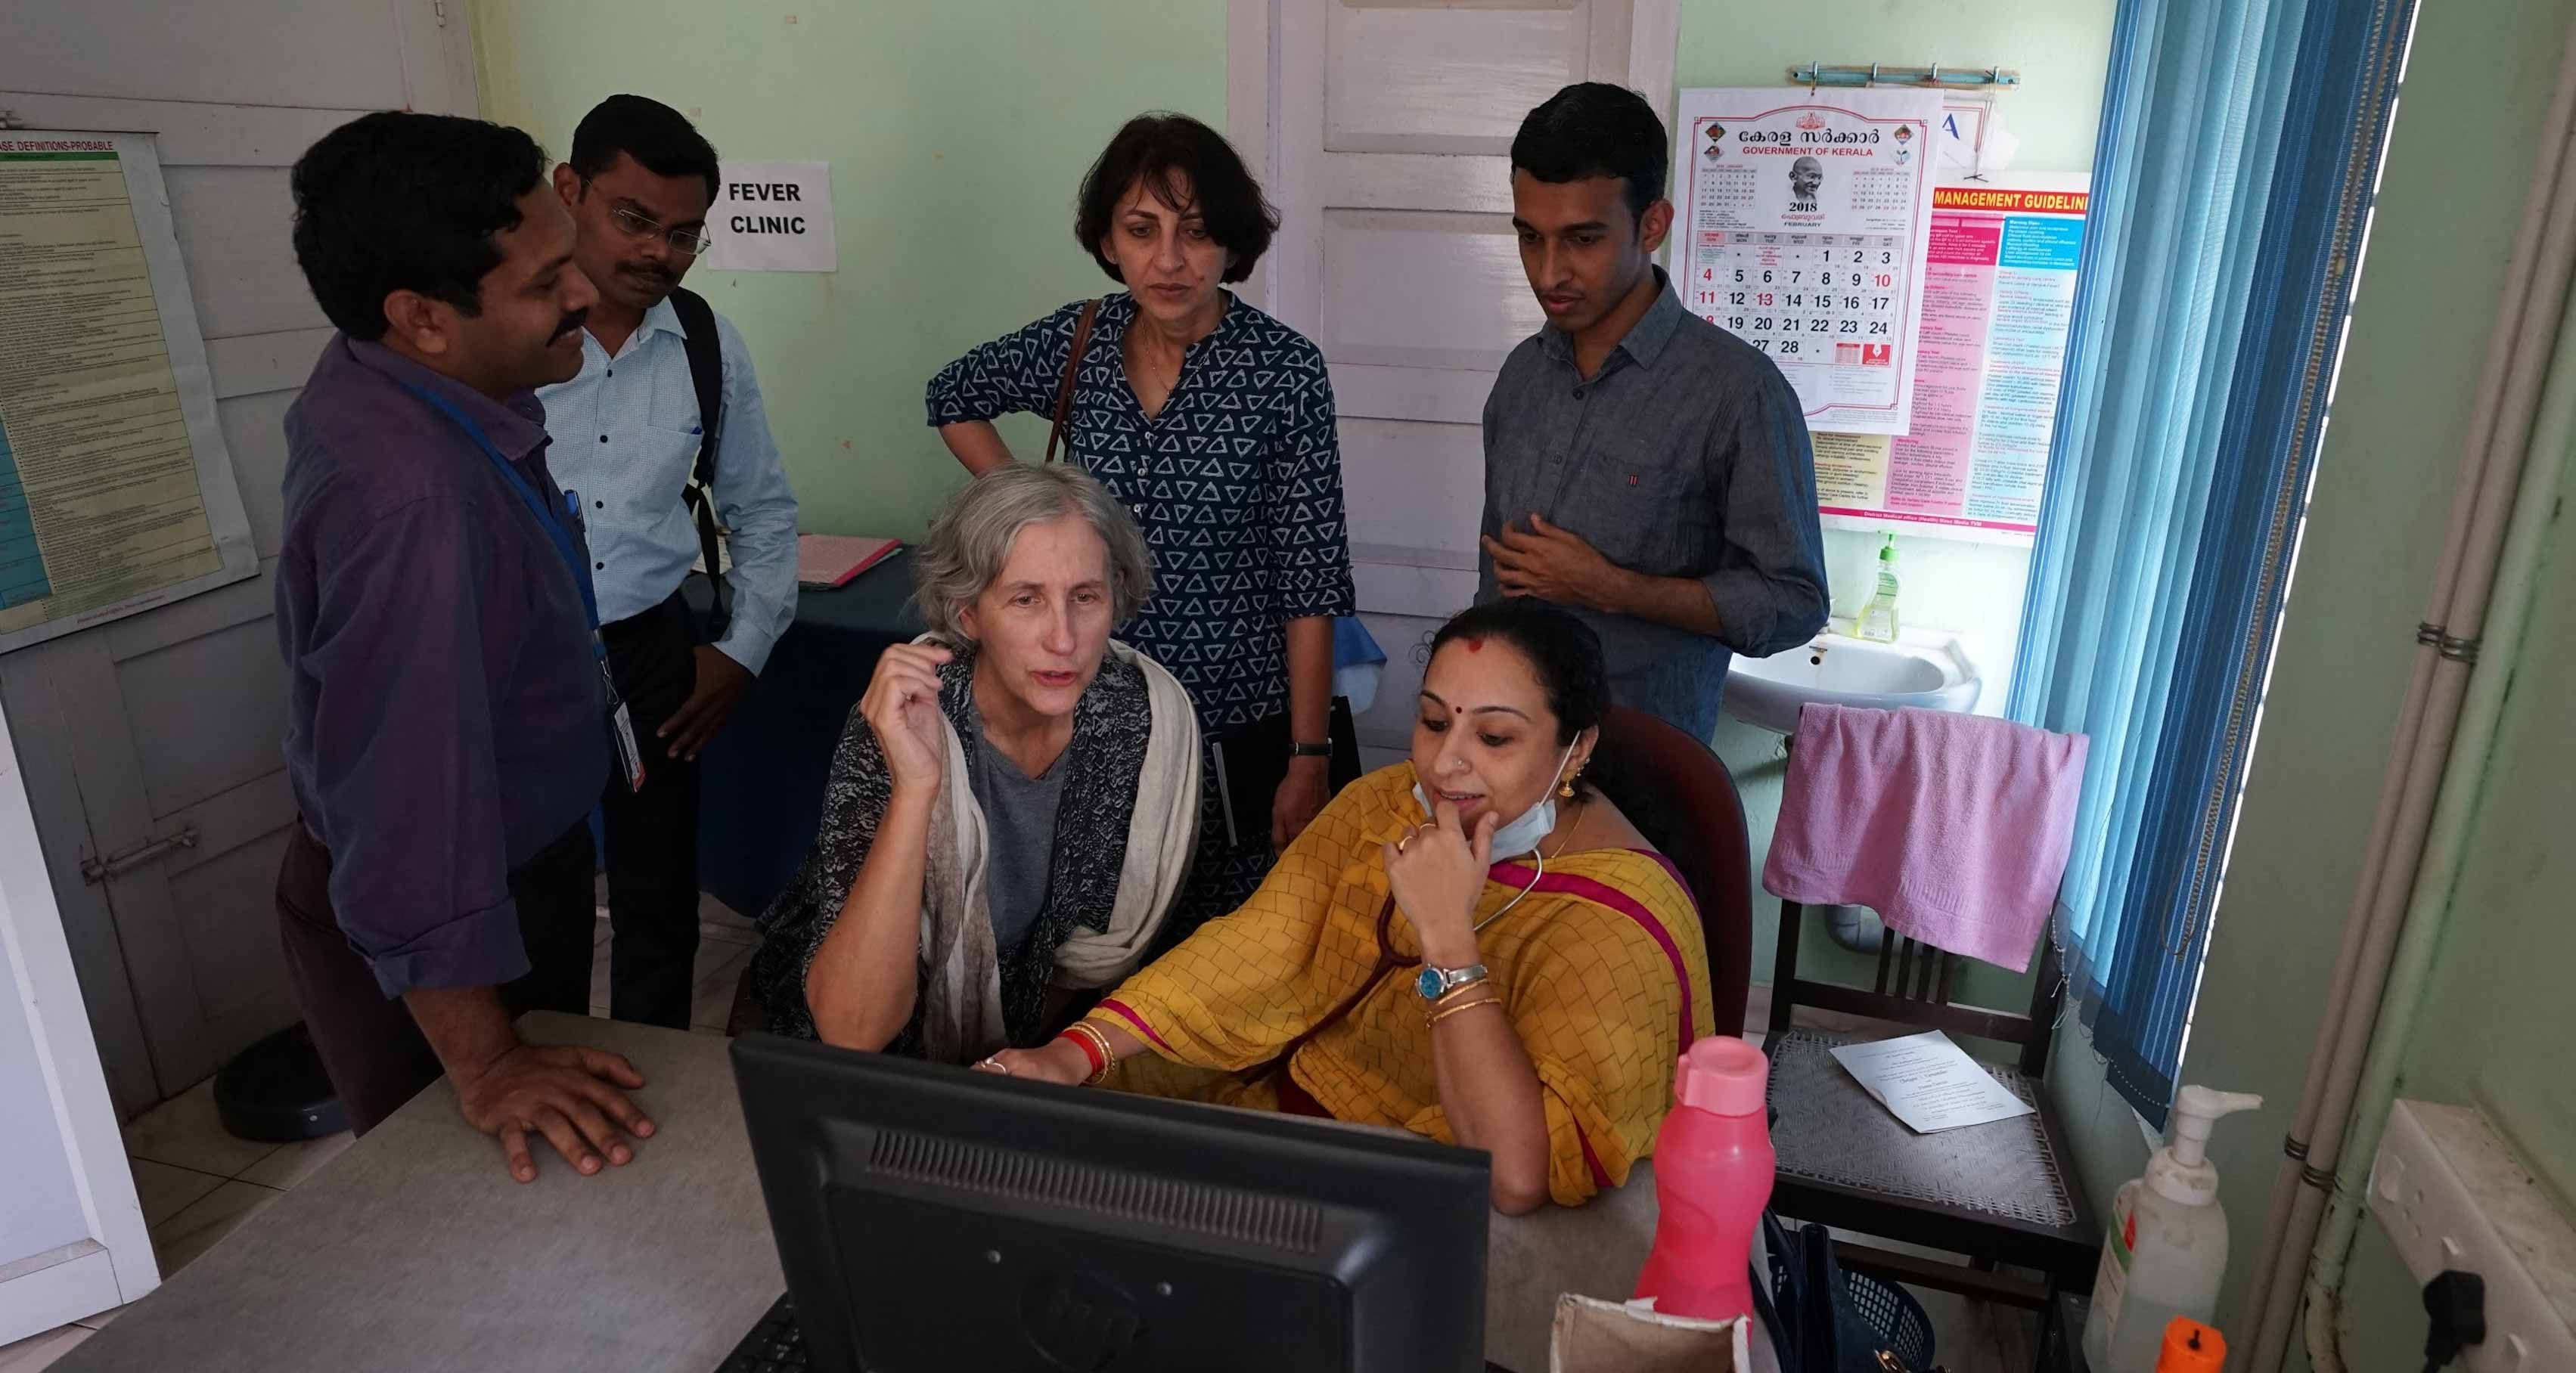 A member of the Simple team interviews a physician in India